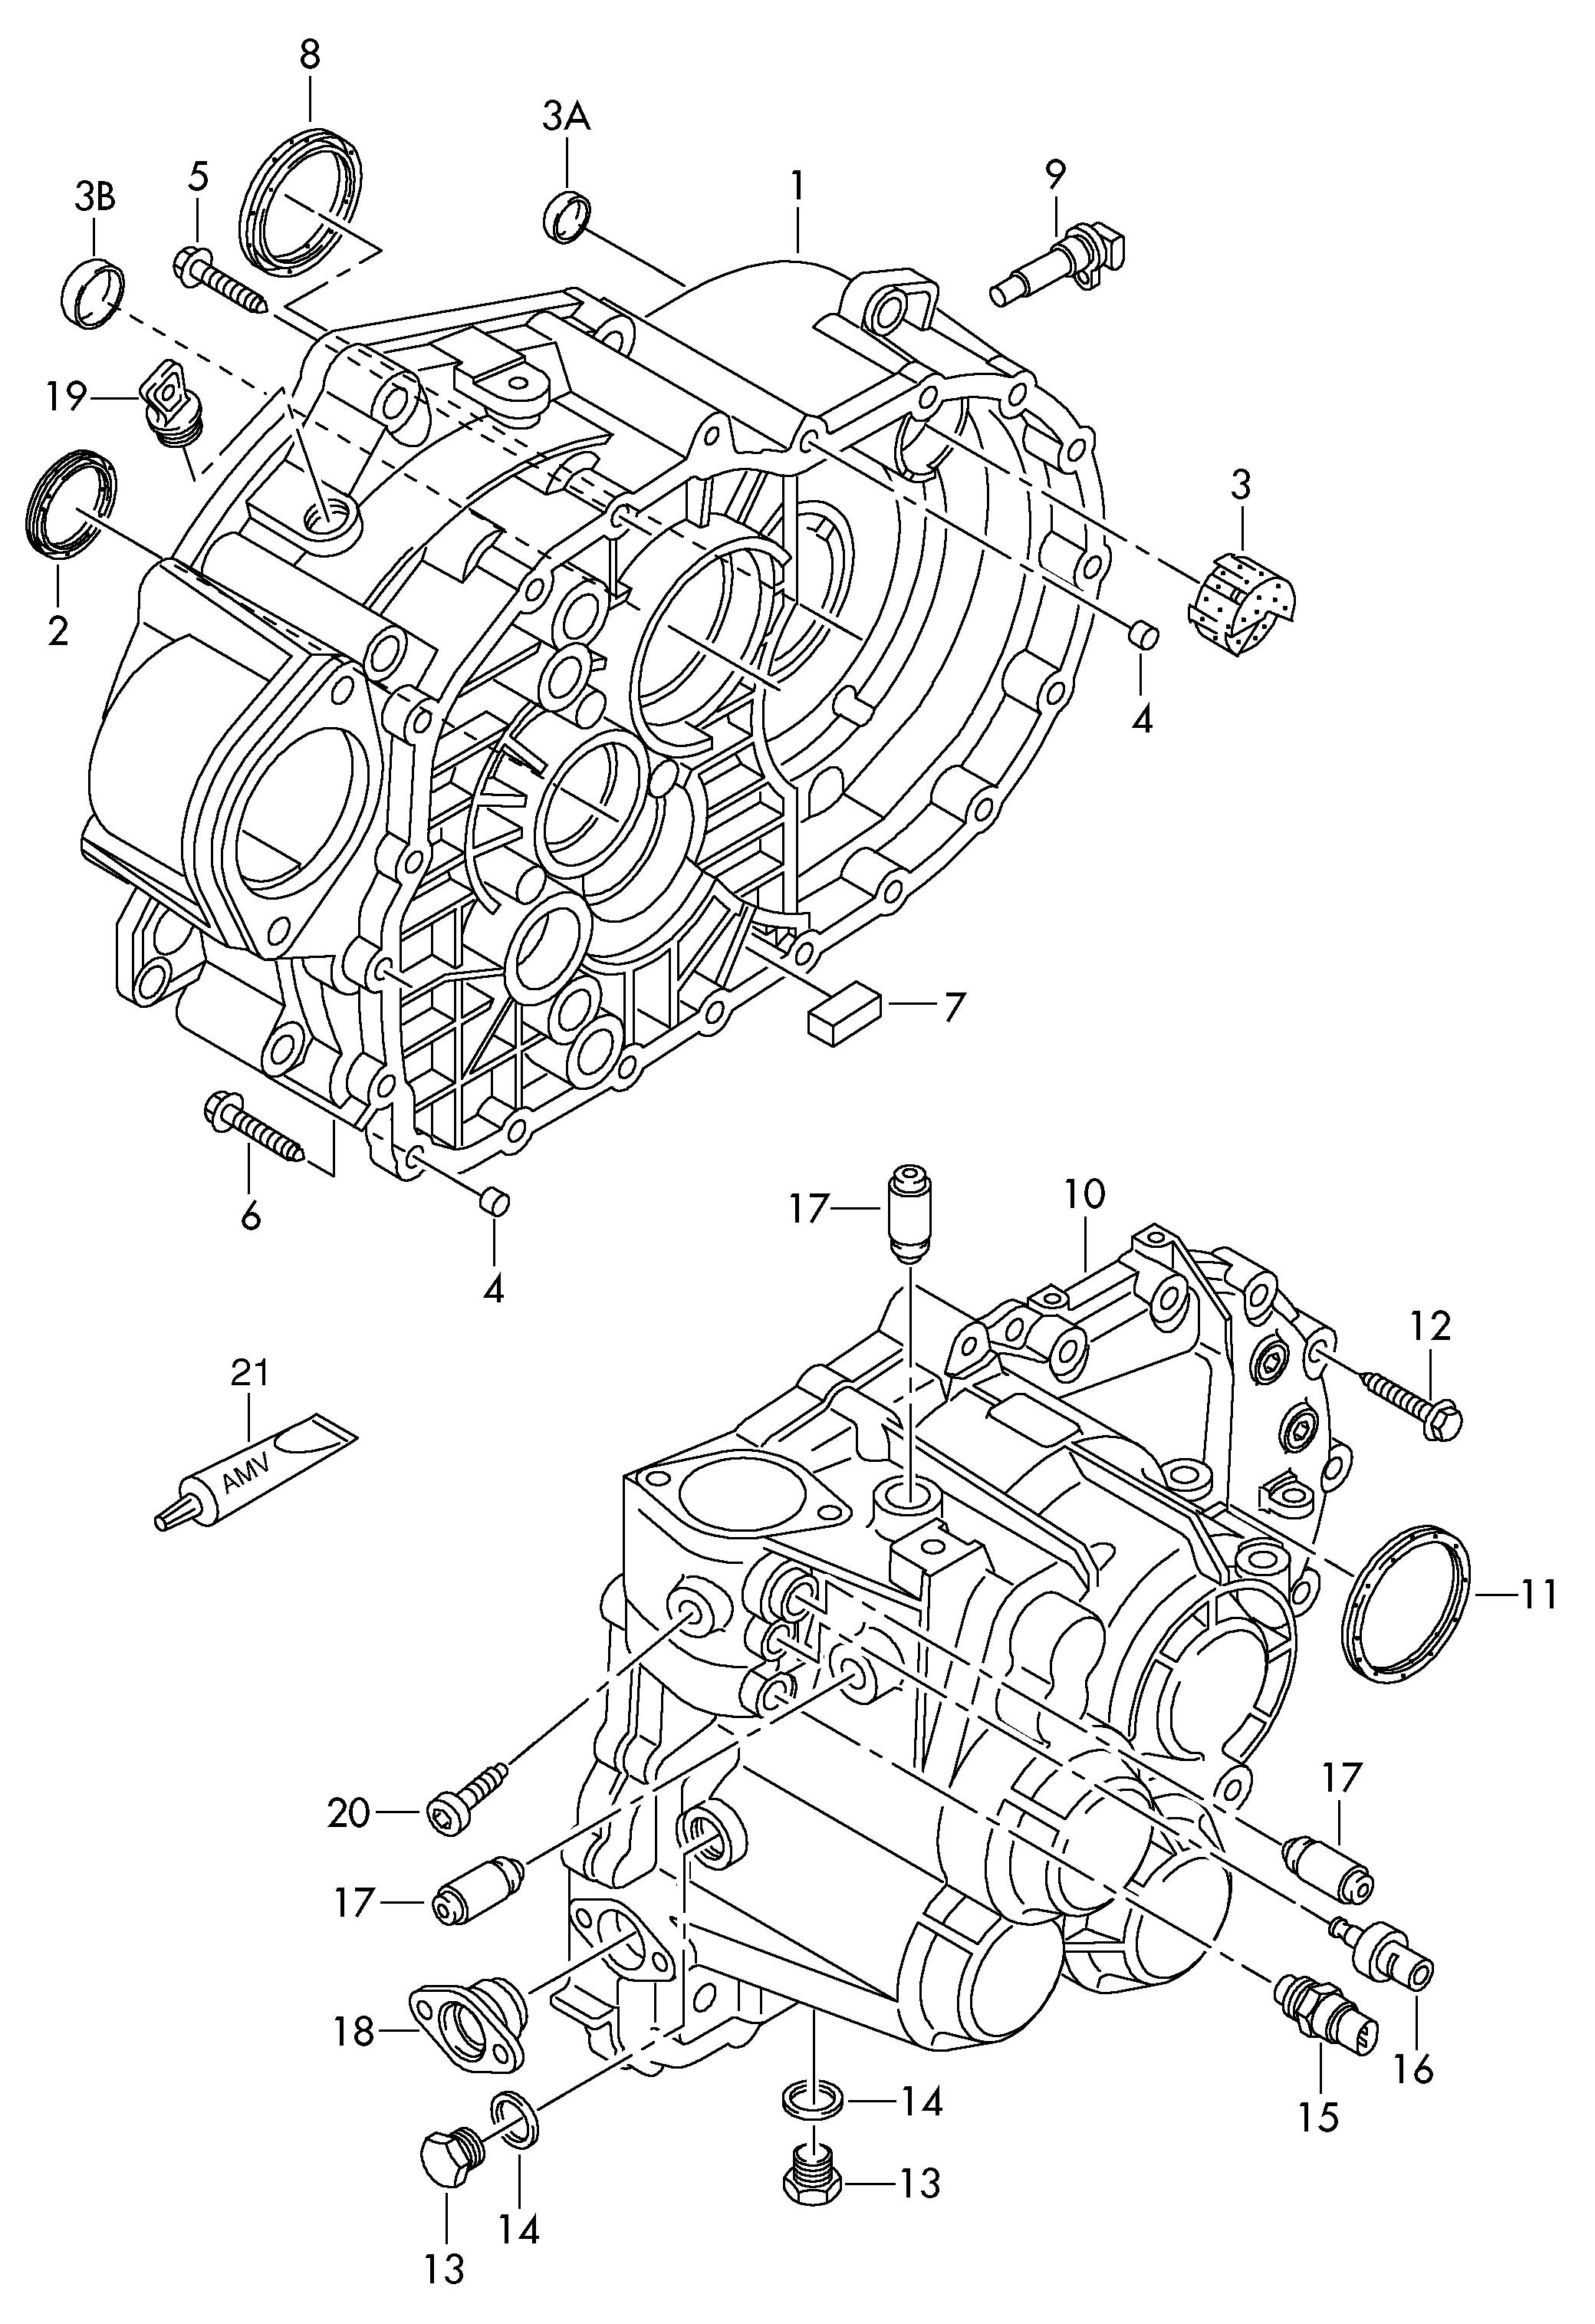 Vw Beetle Manual Transmission Diagram Pictures To Pin